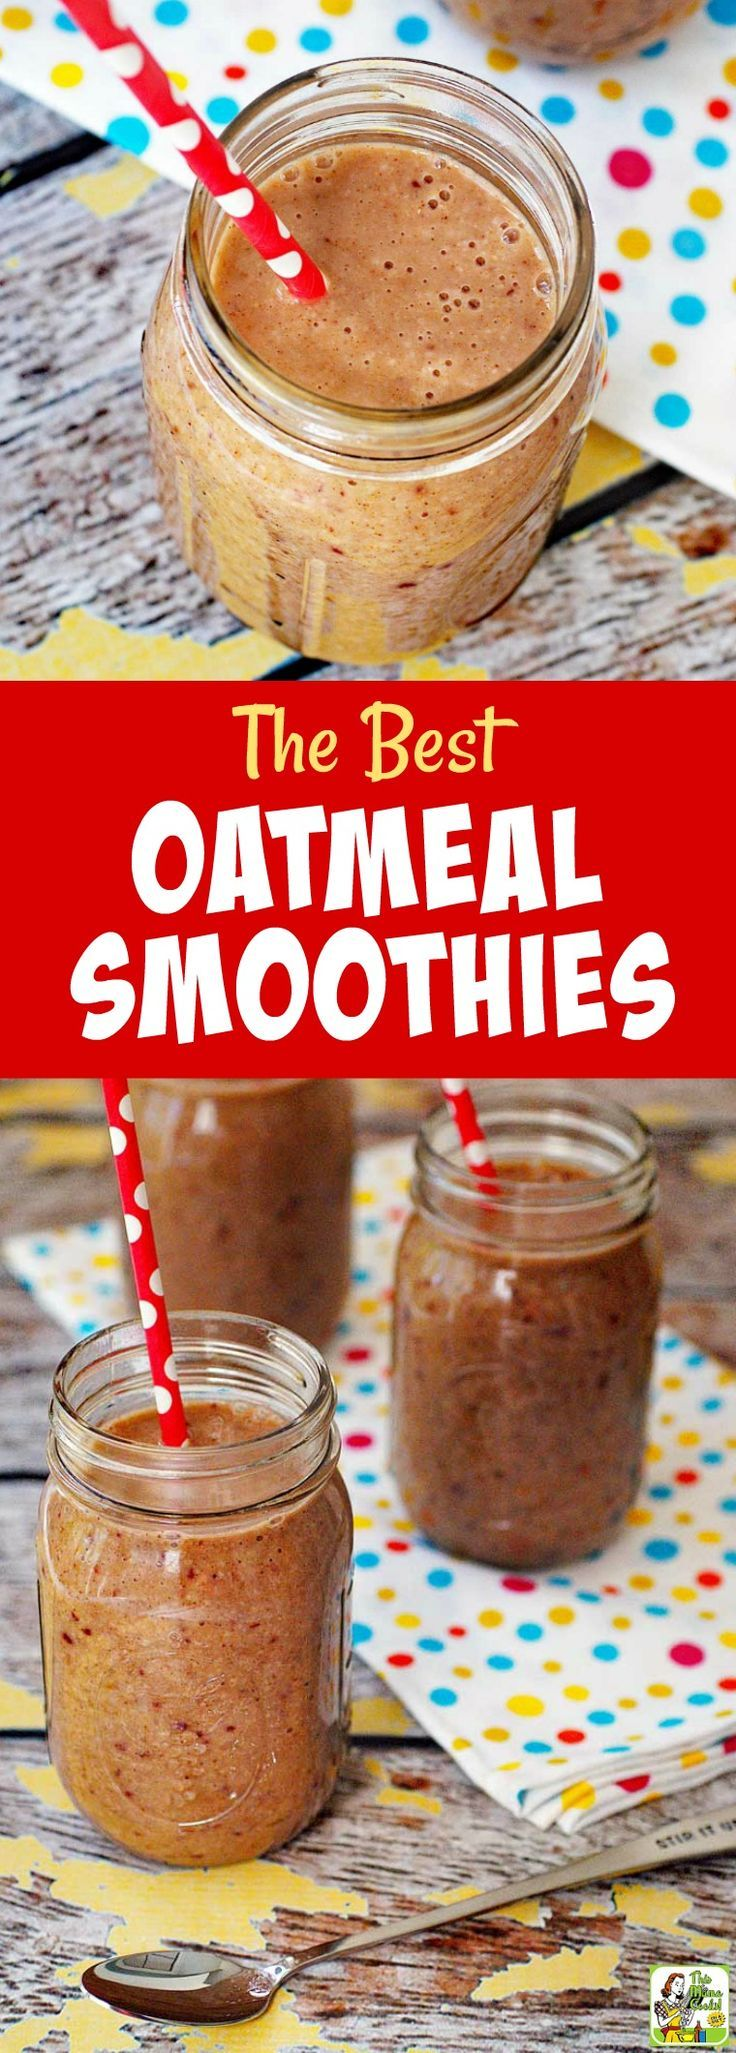 Do you love a fruit smoothies recipe for breakfast or an after workout snack? Then learn how to make the best oatmeal smoothies recipe. This is also a dairy free and gluten free smoothie recipe. #glutenfree #dairyfree #smoothie #smoothies #oatmeal #shake #healthydrink #snack #banana #strawberries #weightloss #breakfast